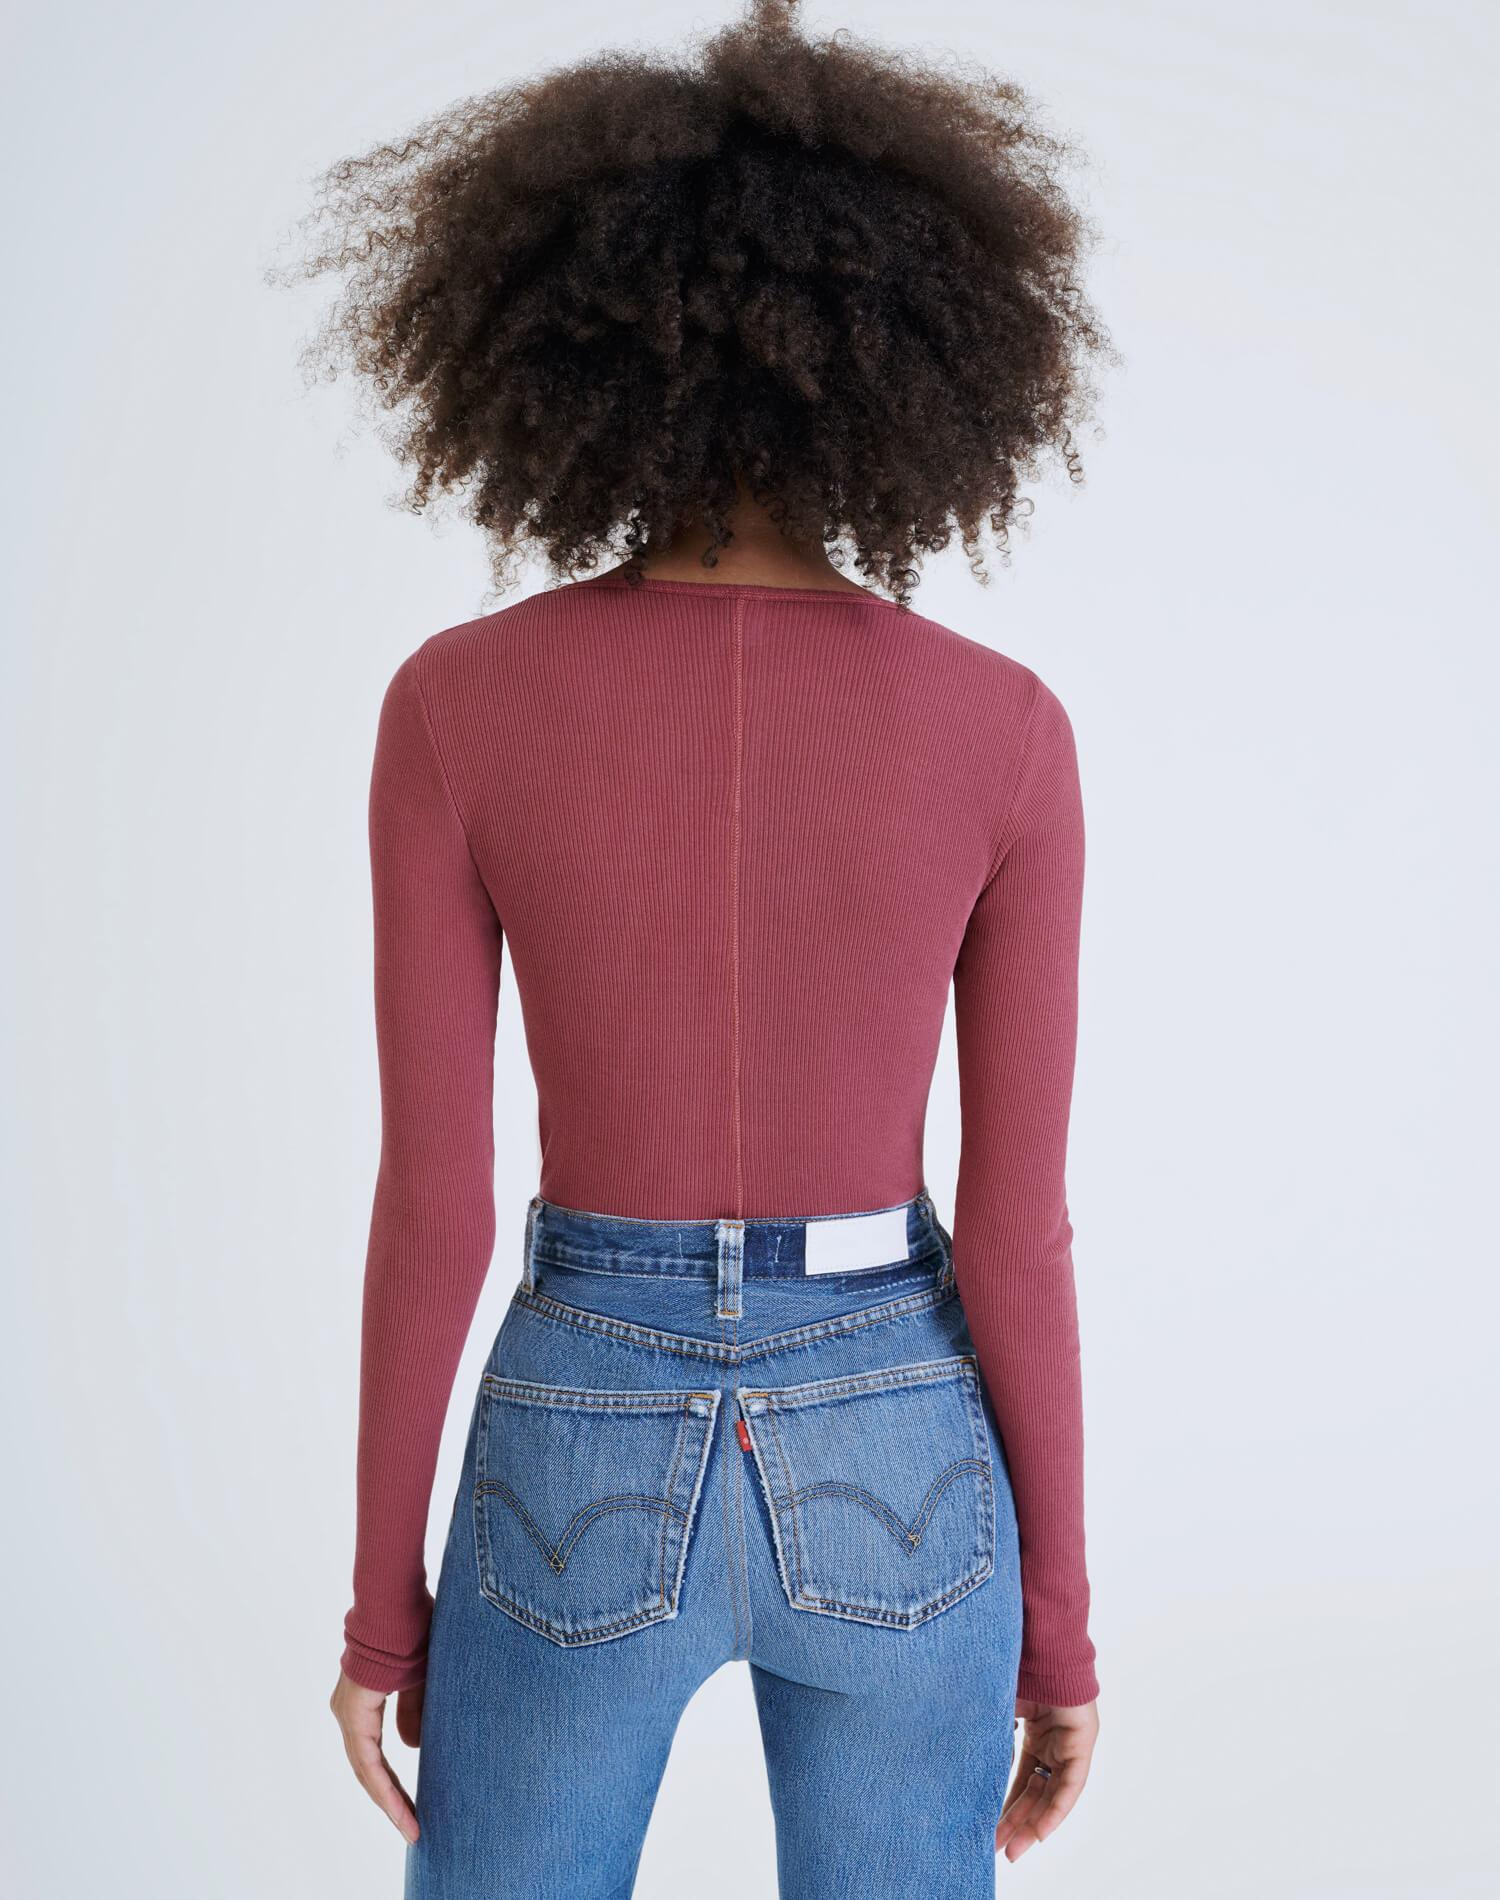 60s Ribbed Long Sleeve Bodysuit - Natural Berry 4